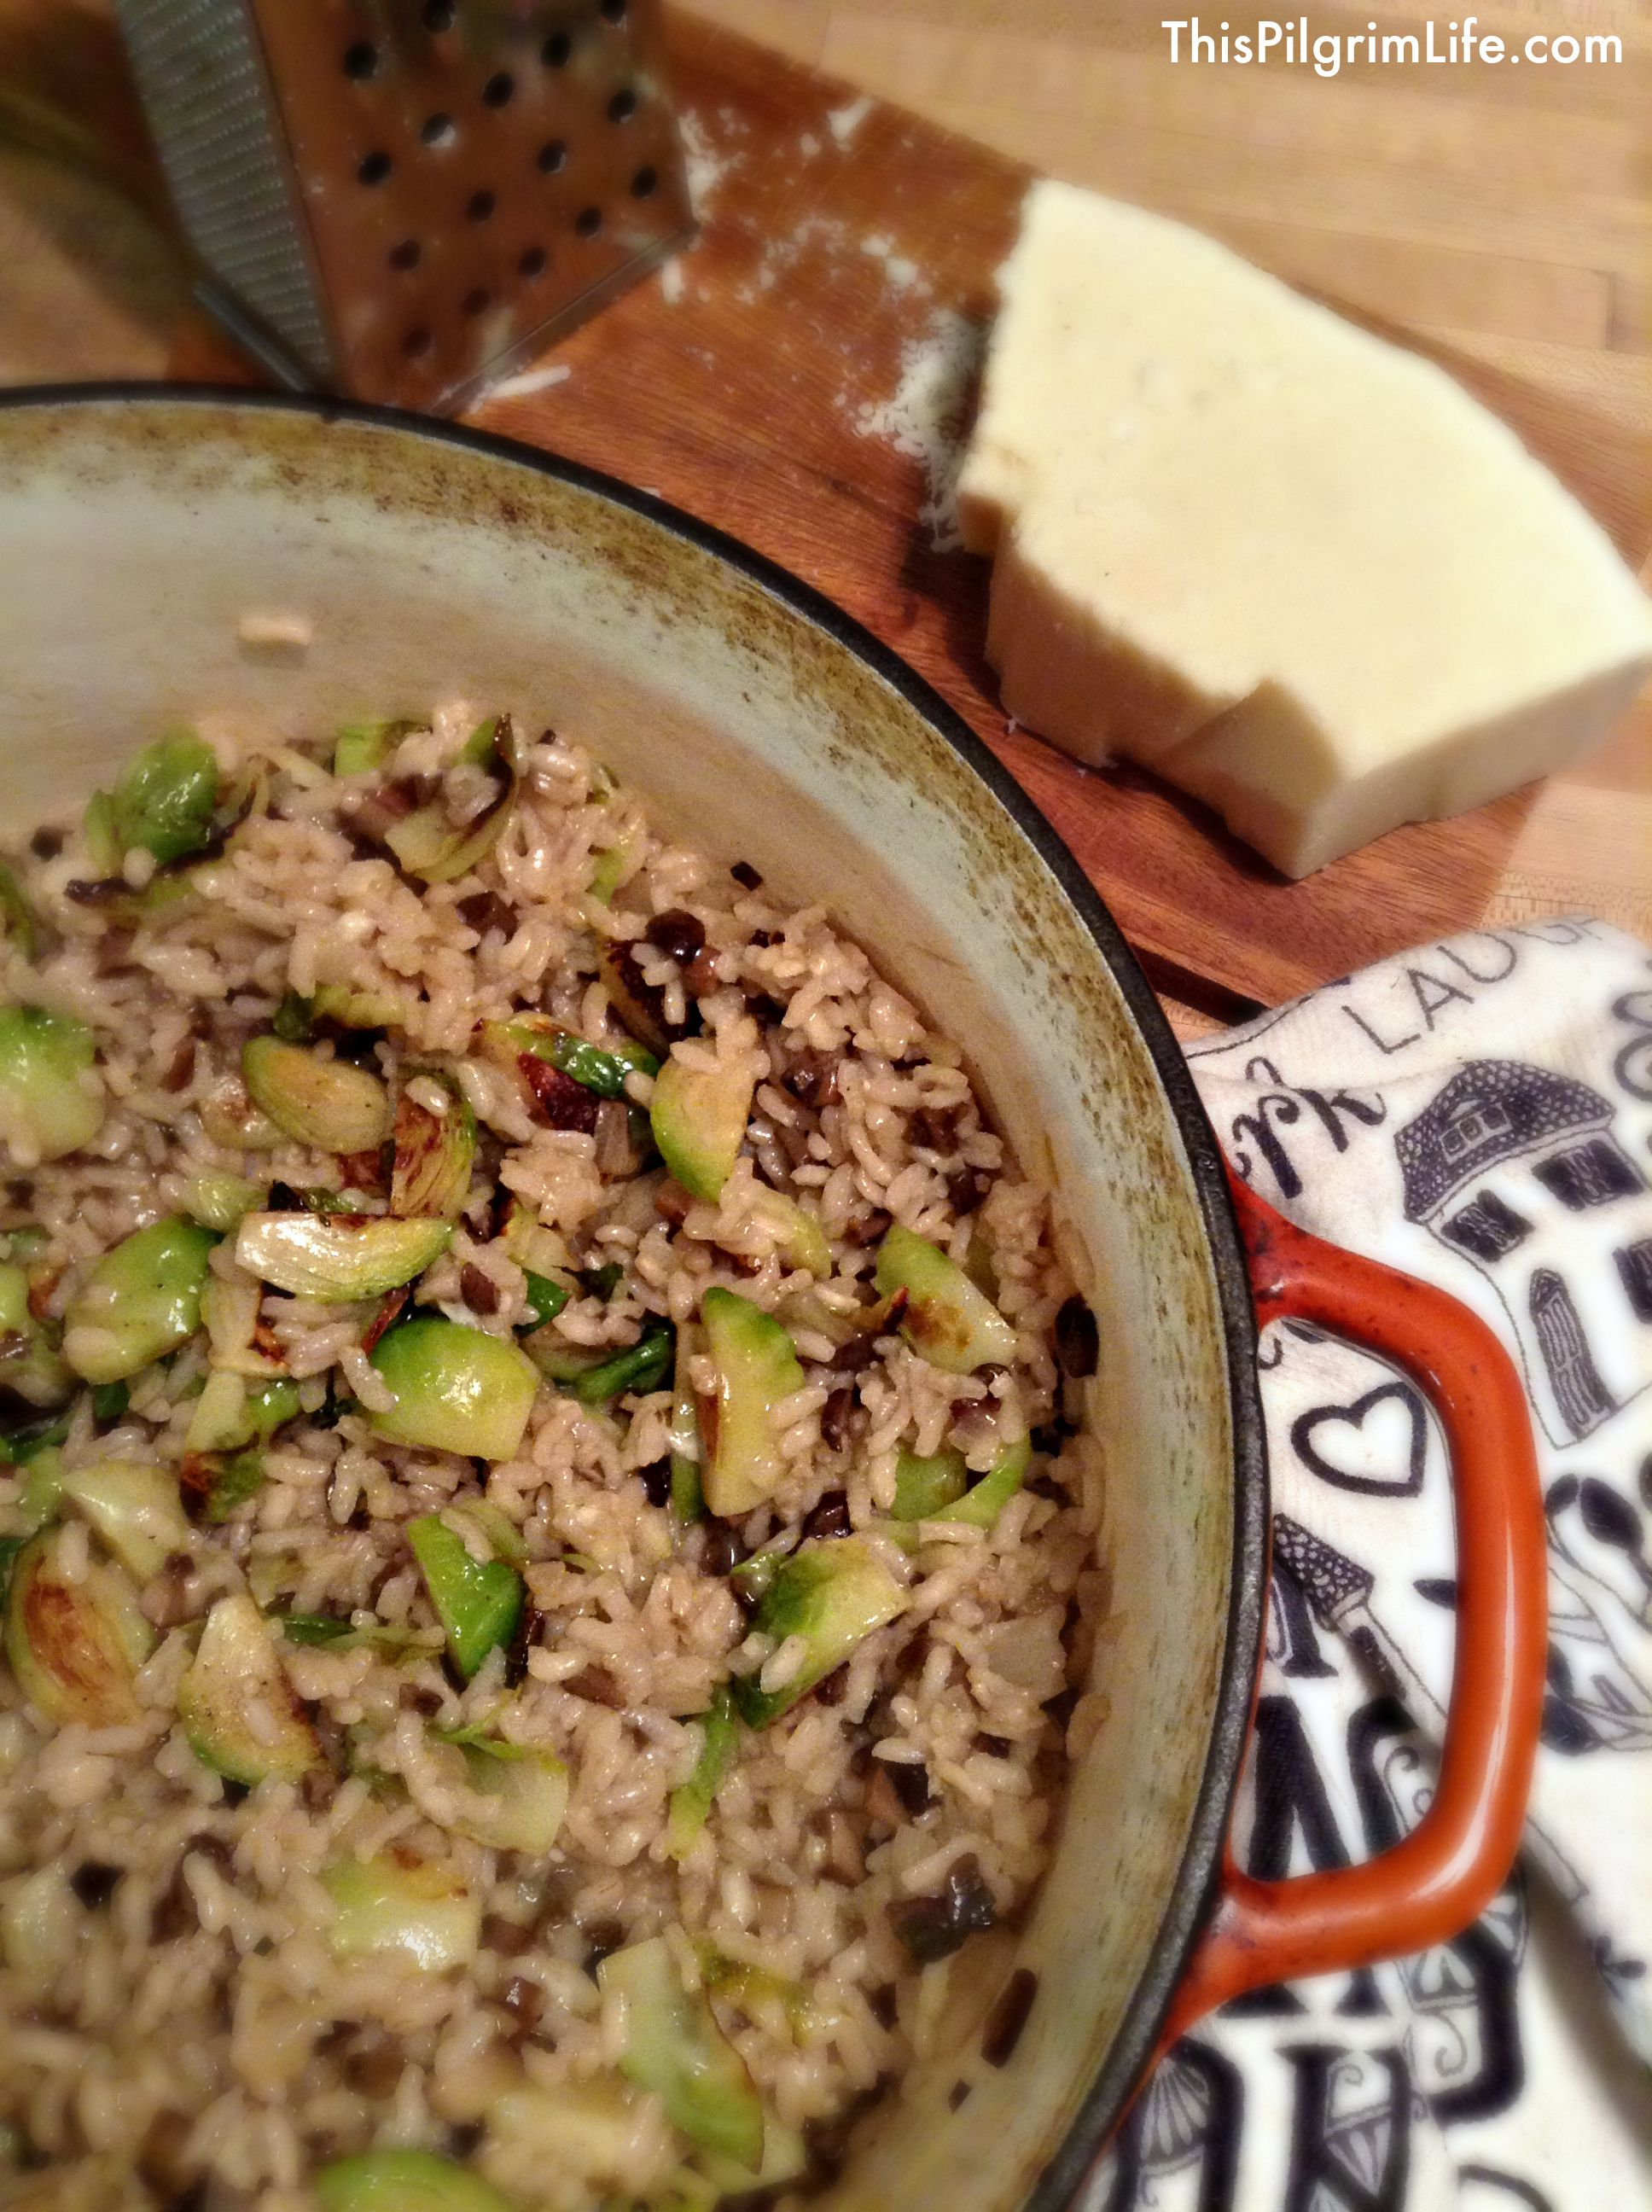 More 30 Minute Meals: Mushroom Risotto with Roasted Brussel Sprouts